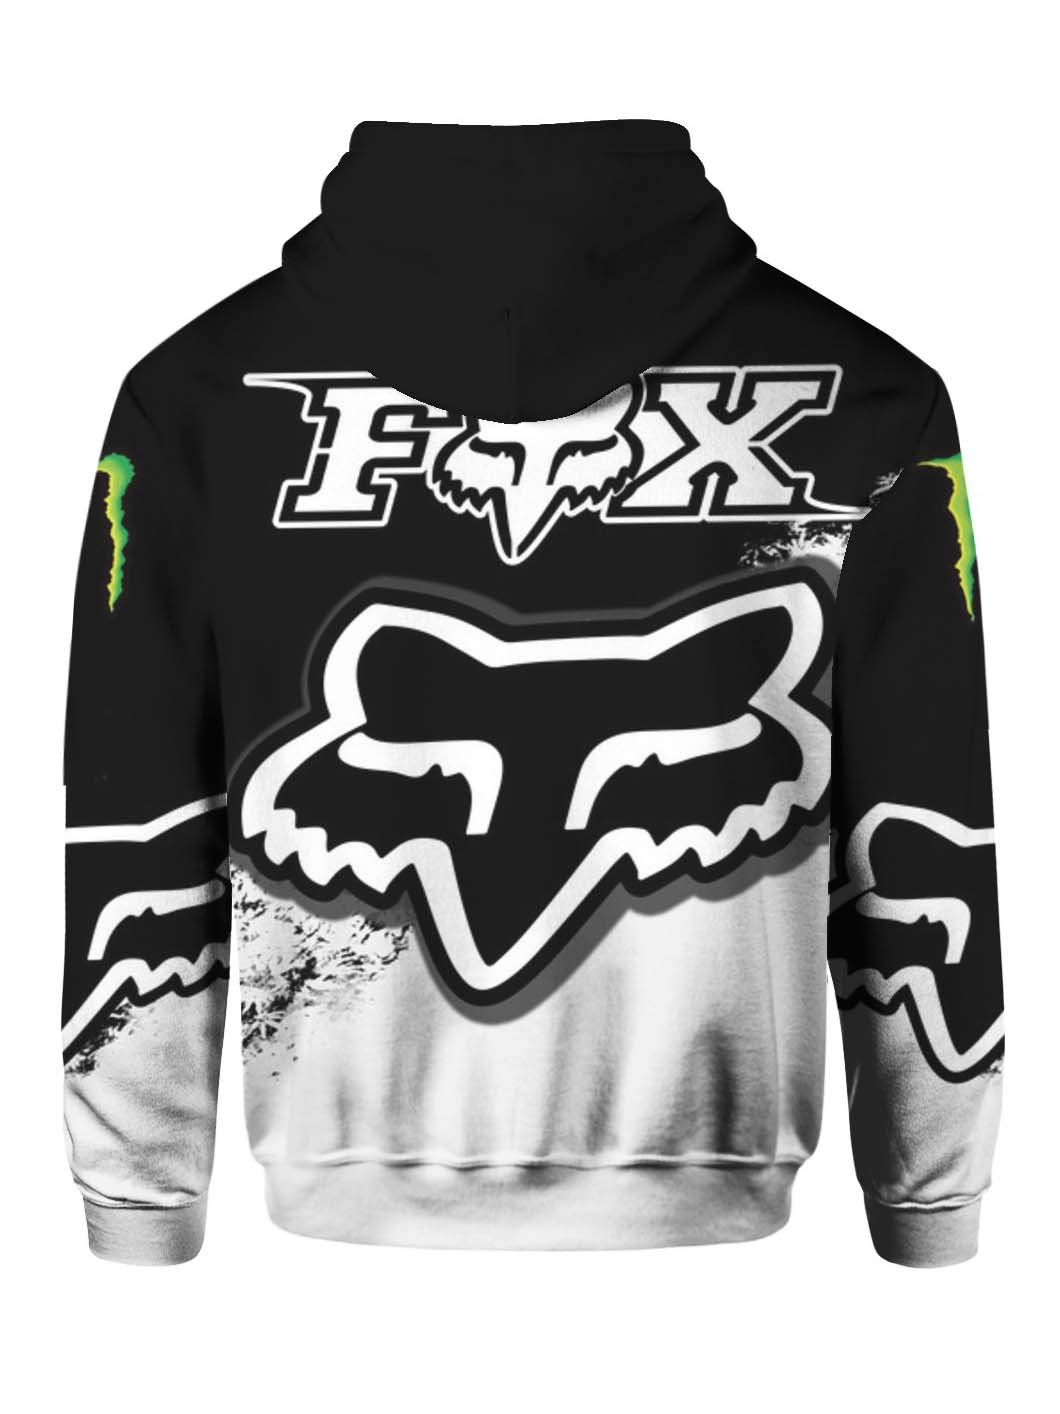 monster energy green and fox racing full over printed hoodie